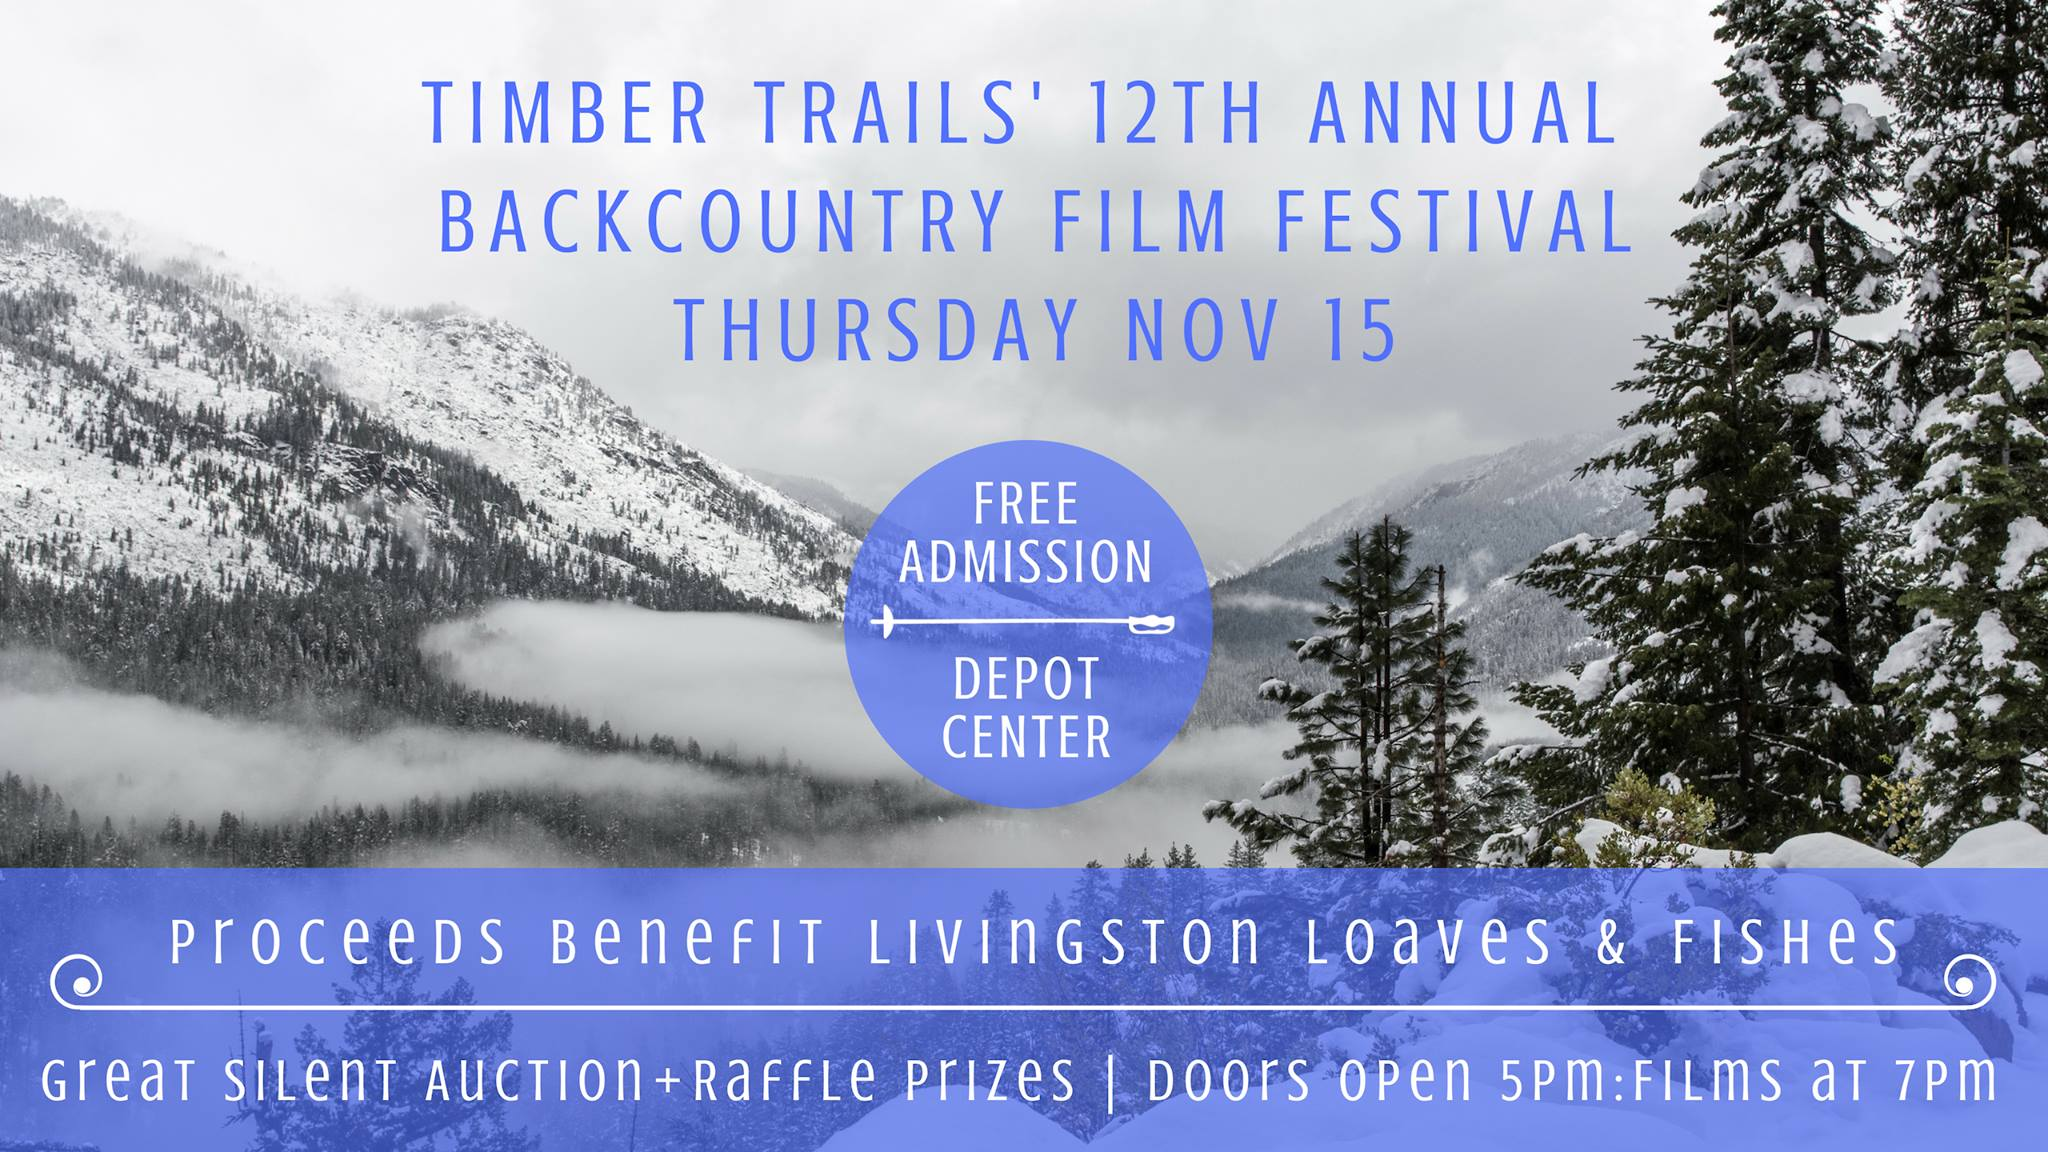 12th Annual Free Backcountry Film Festival: Timber Trails